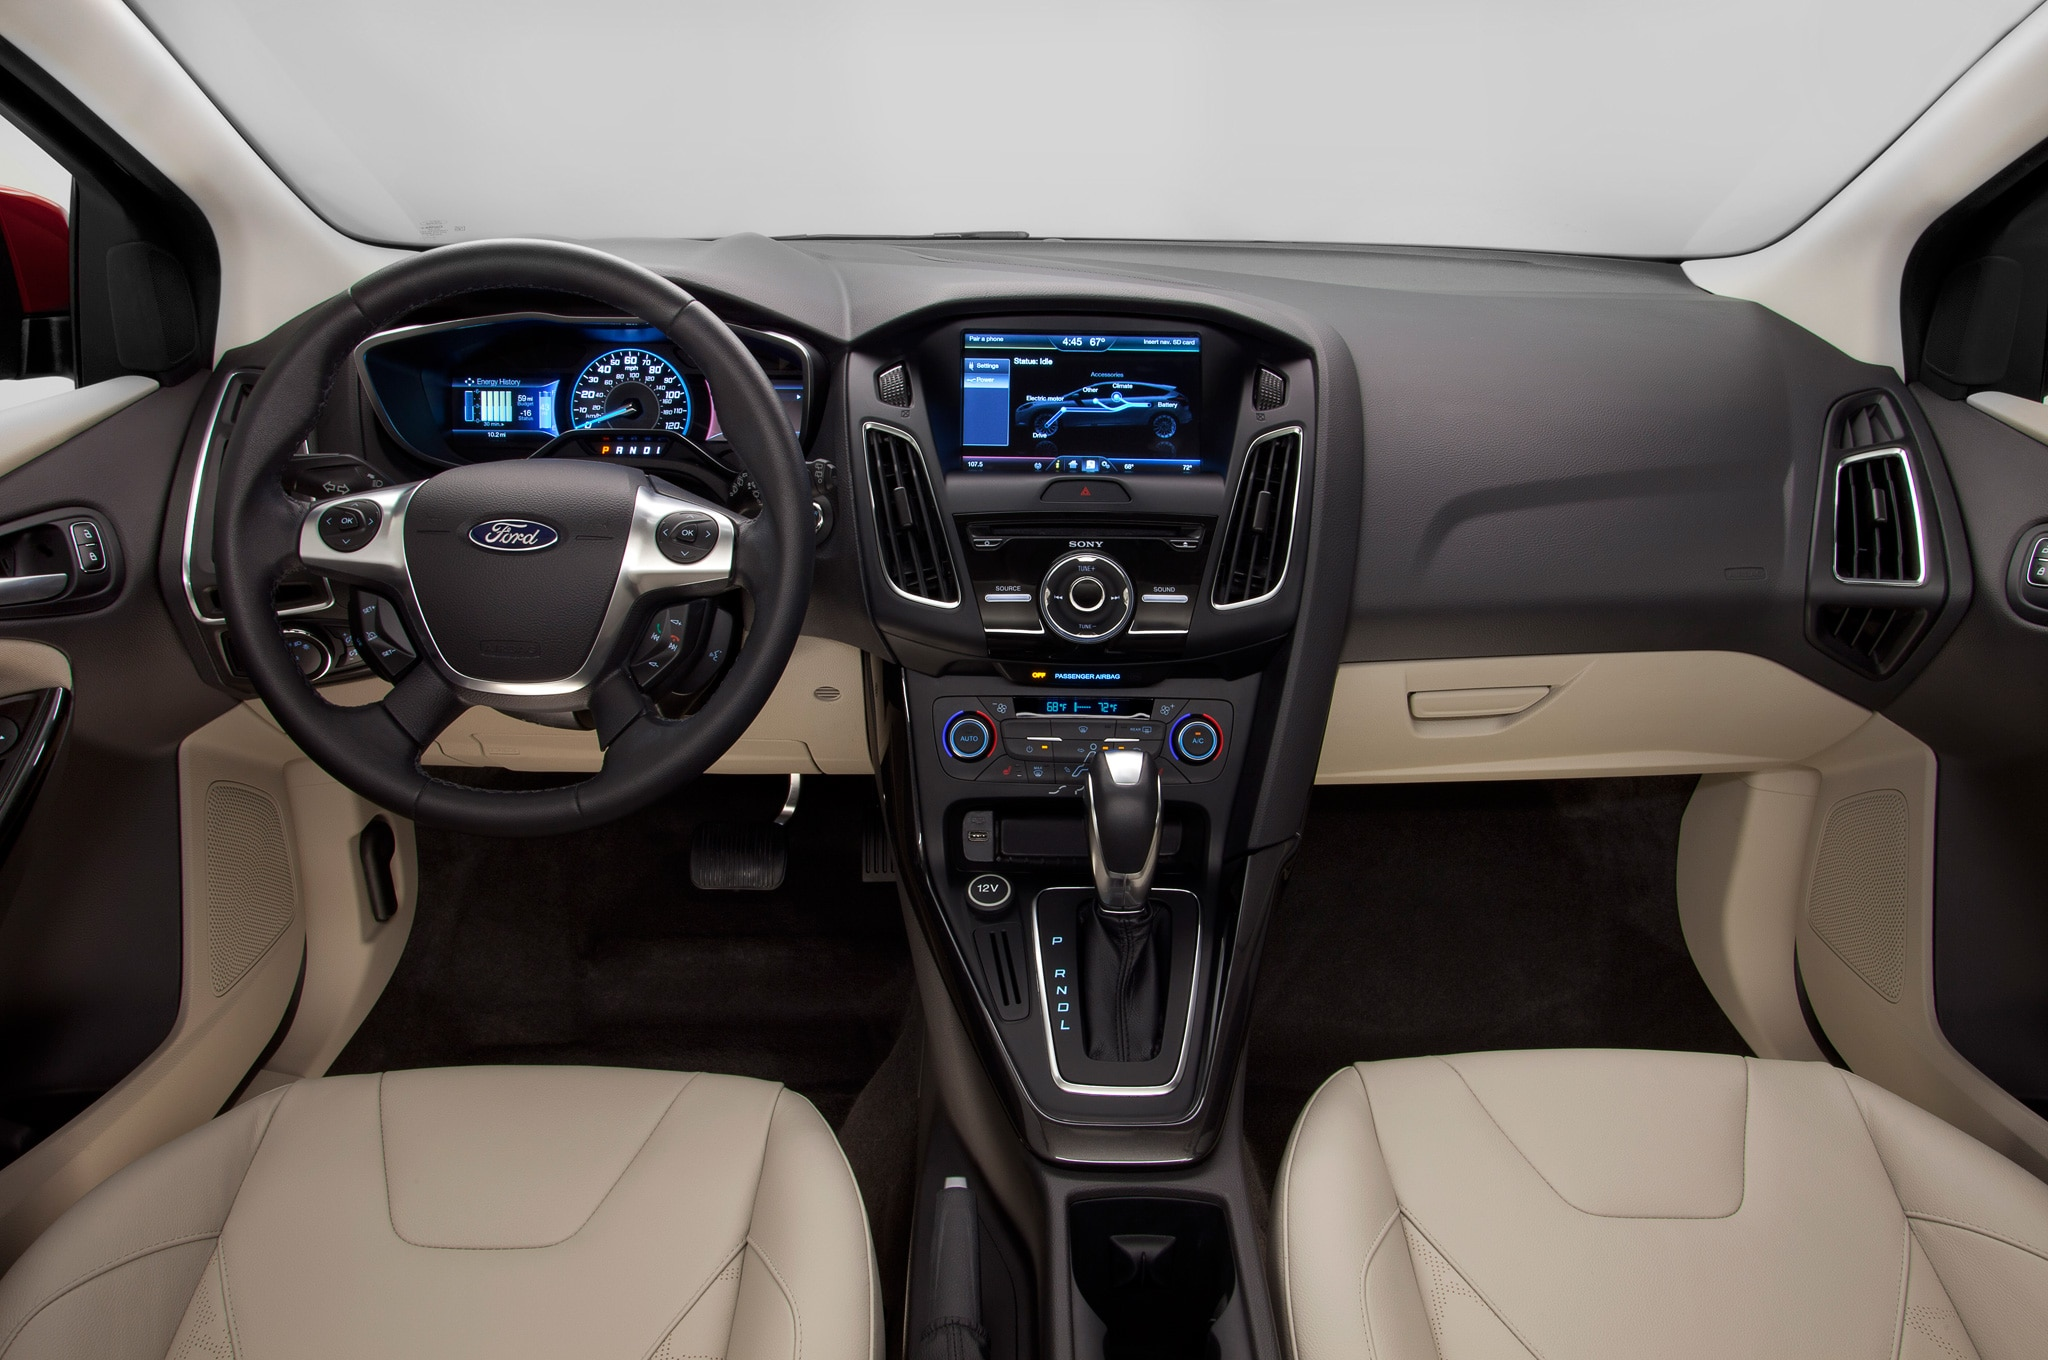 2015 ford focus electric interior wider view